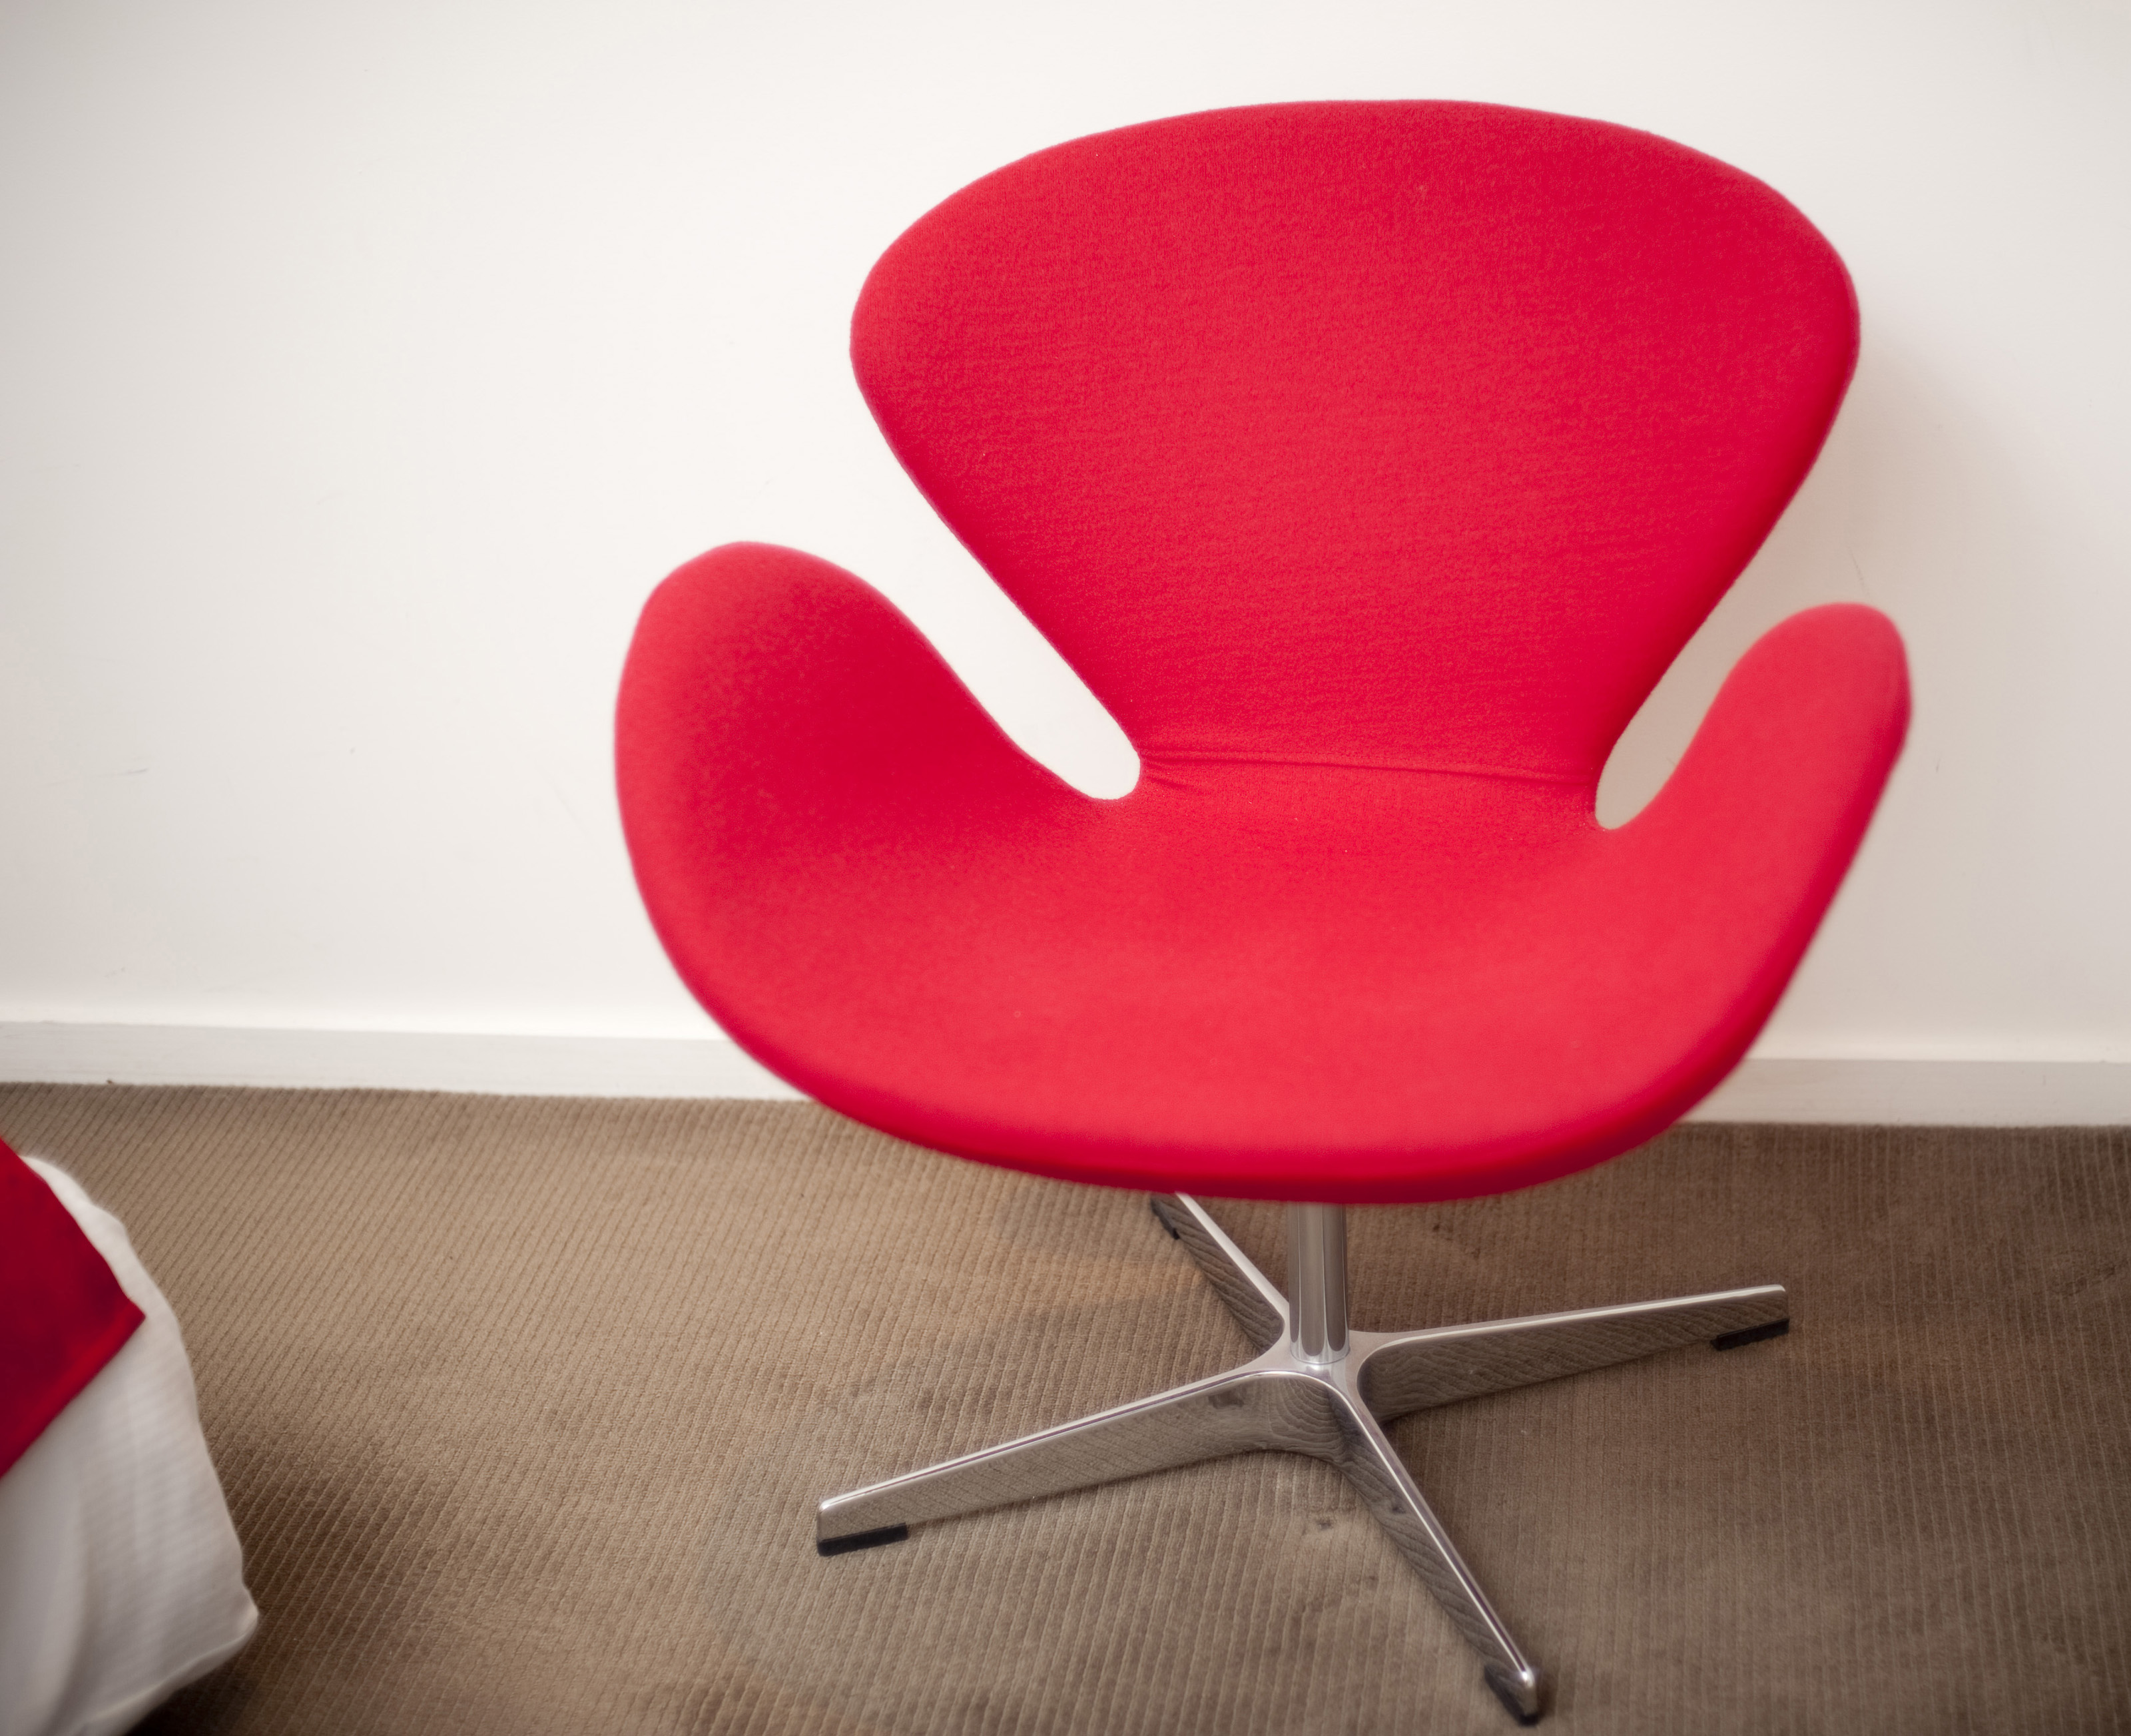 modern retro furniture. Modern Retro-style Furniture With A Bright Red Modular Chair On Steel Base Against Retro I